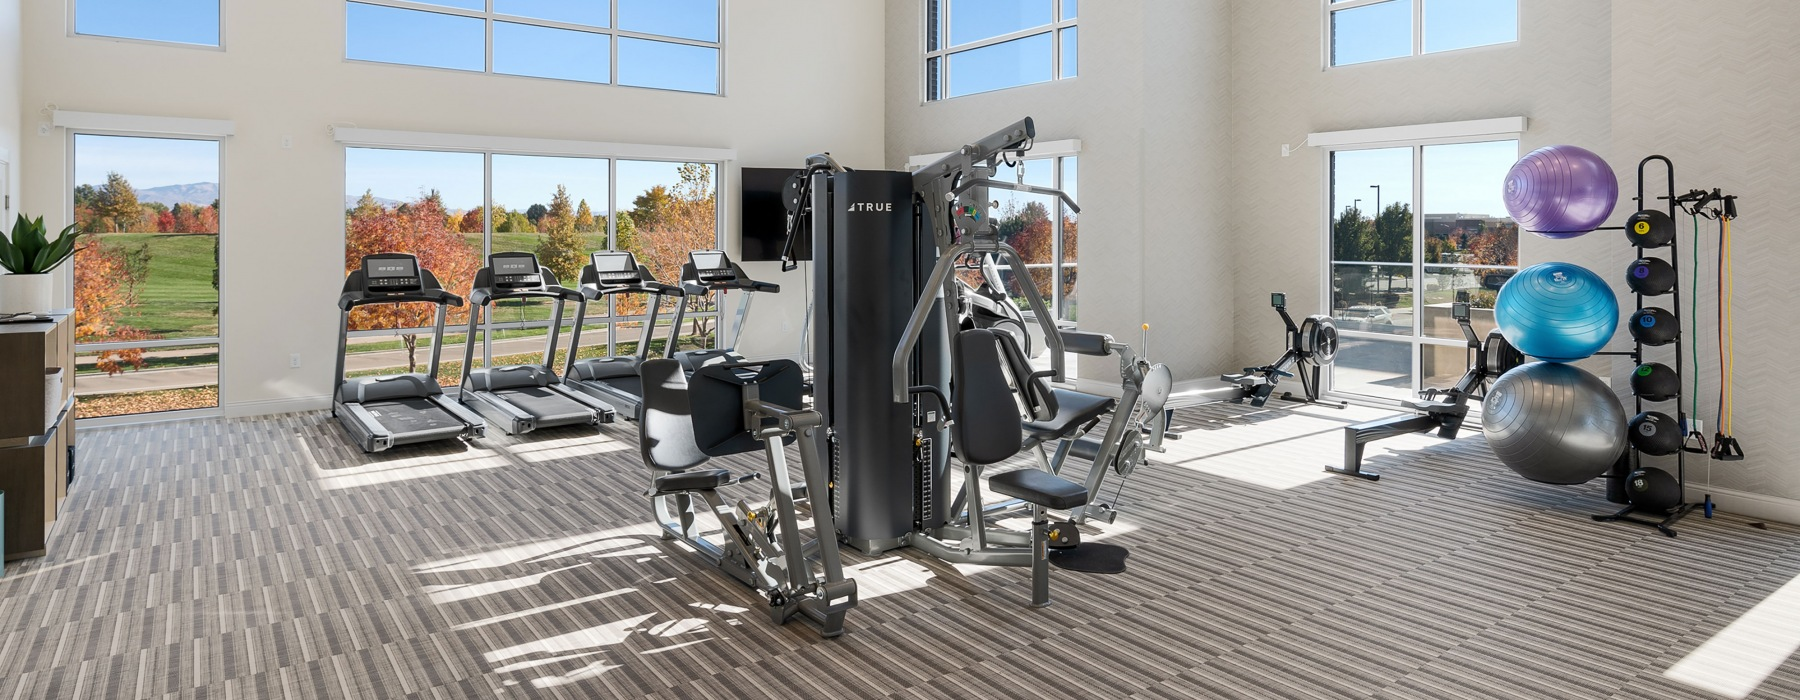 Bri at the Village Fitness Center for Active Adult Healthy Living